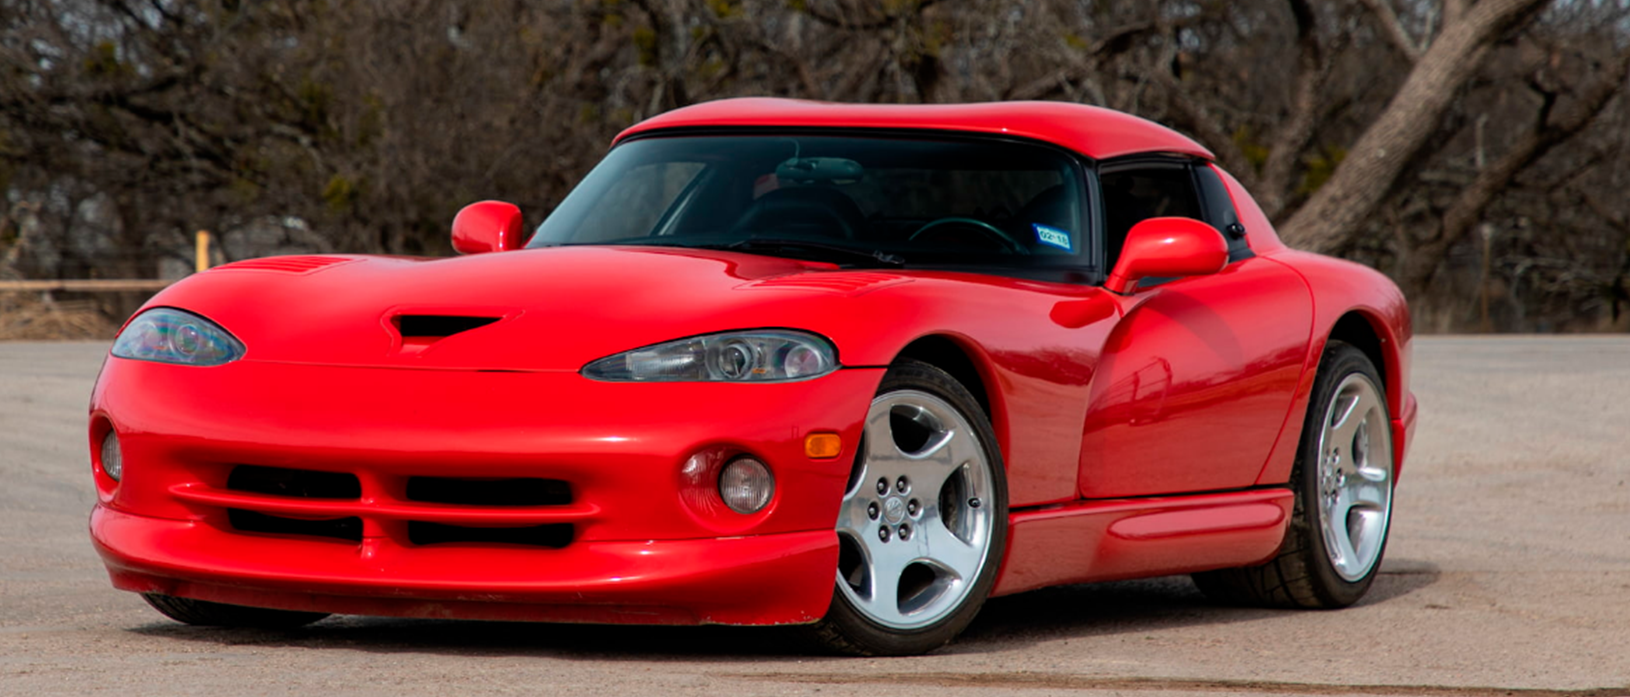 Red 2001 Dodge Viper RT/10